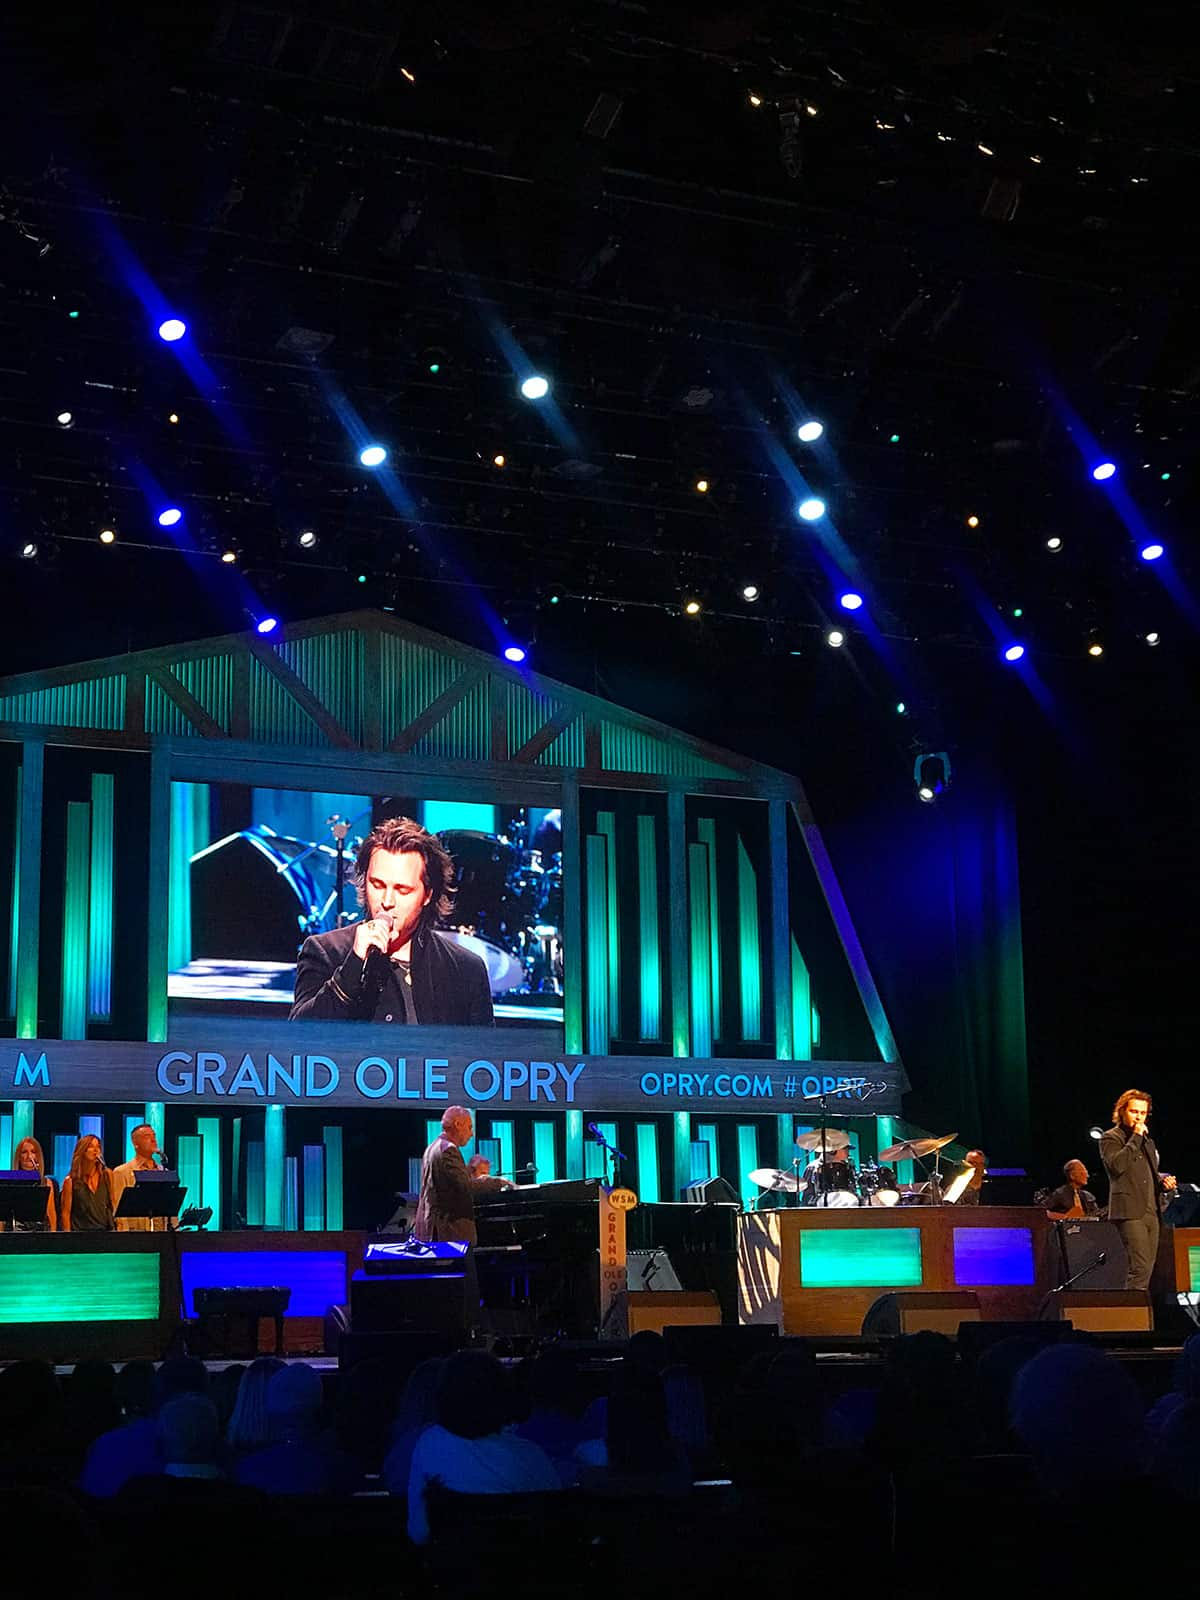 What To Do in Nashville: A Foodie's Guide (Grand Ole Opry)